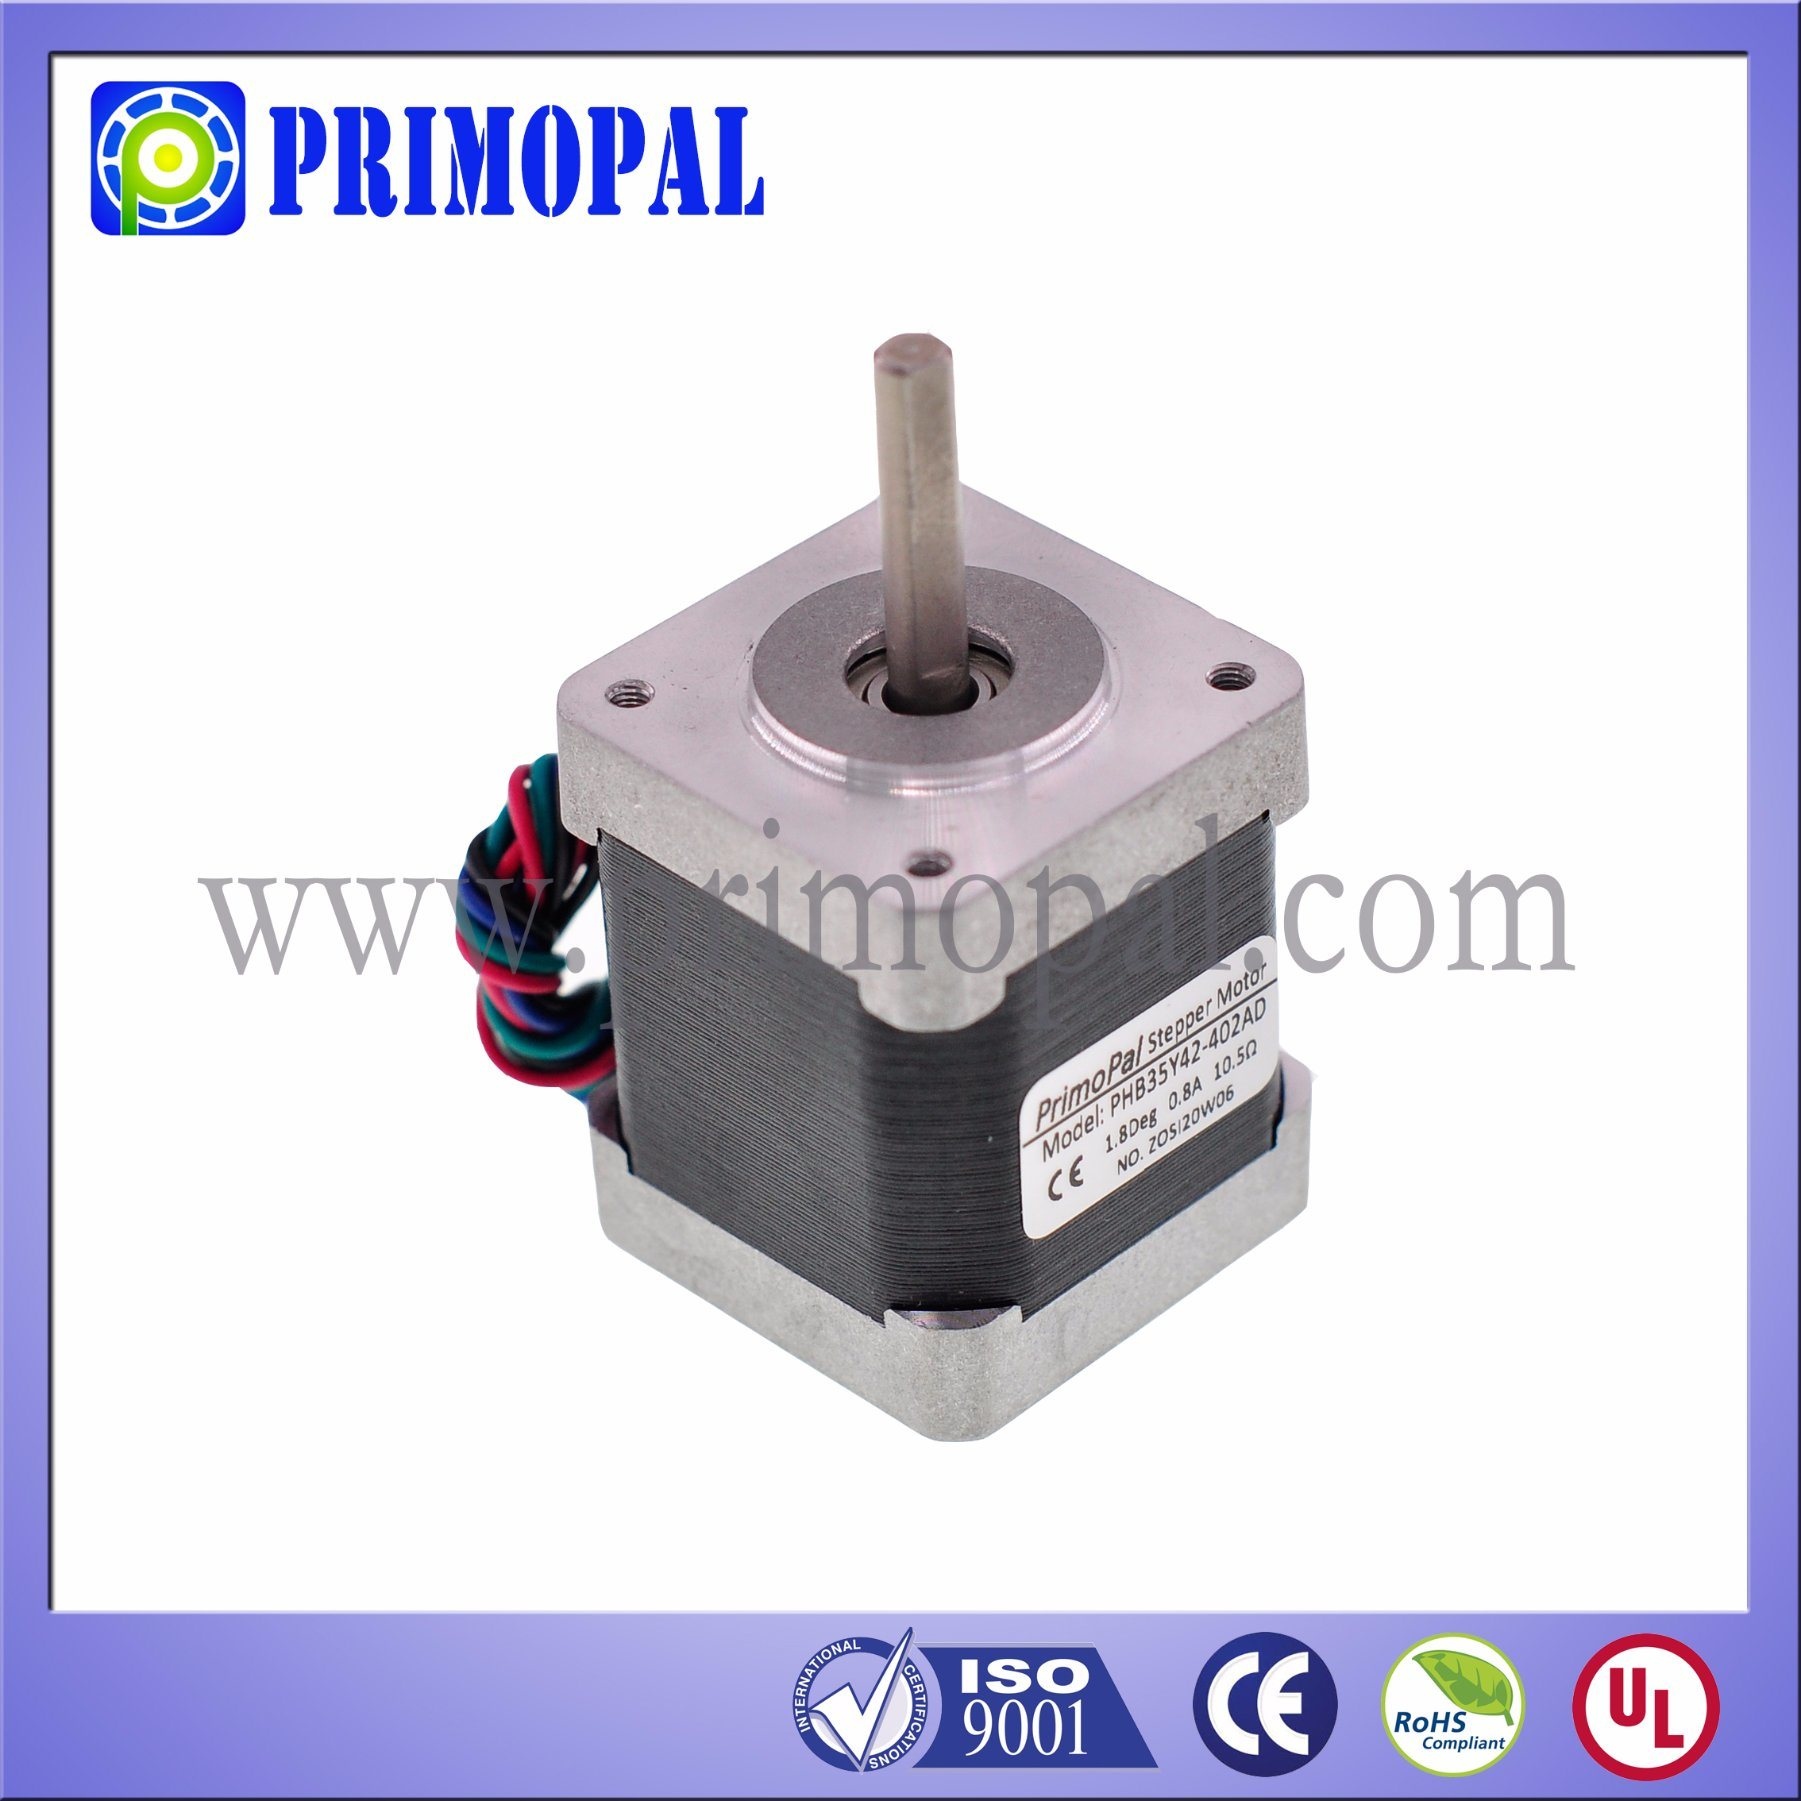 1.8 Degree NEMA 14 Stepper Motor for 3D Printer